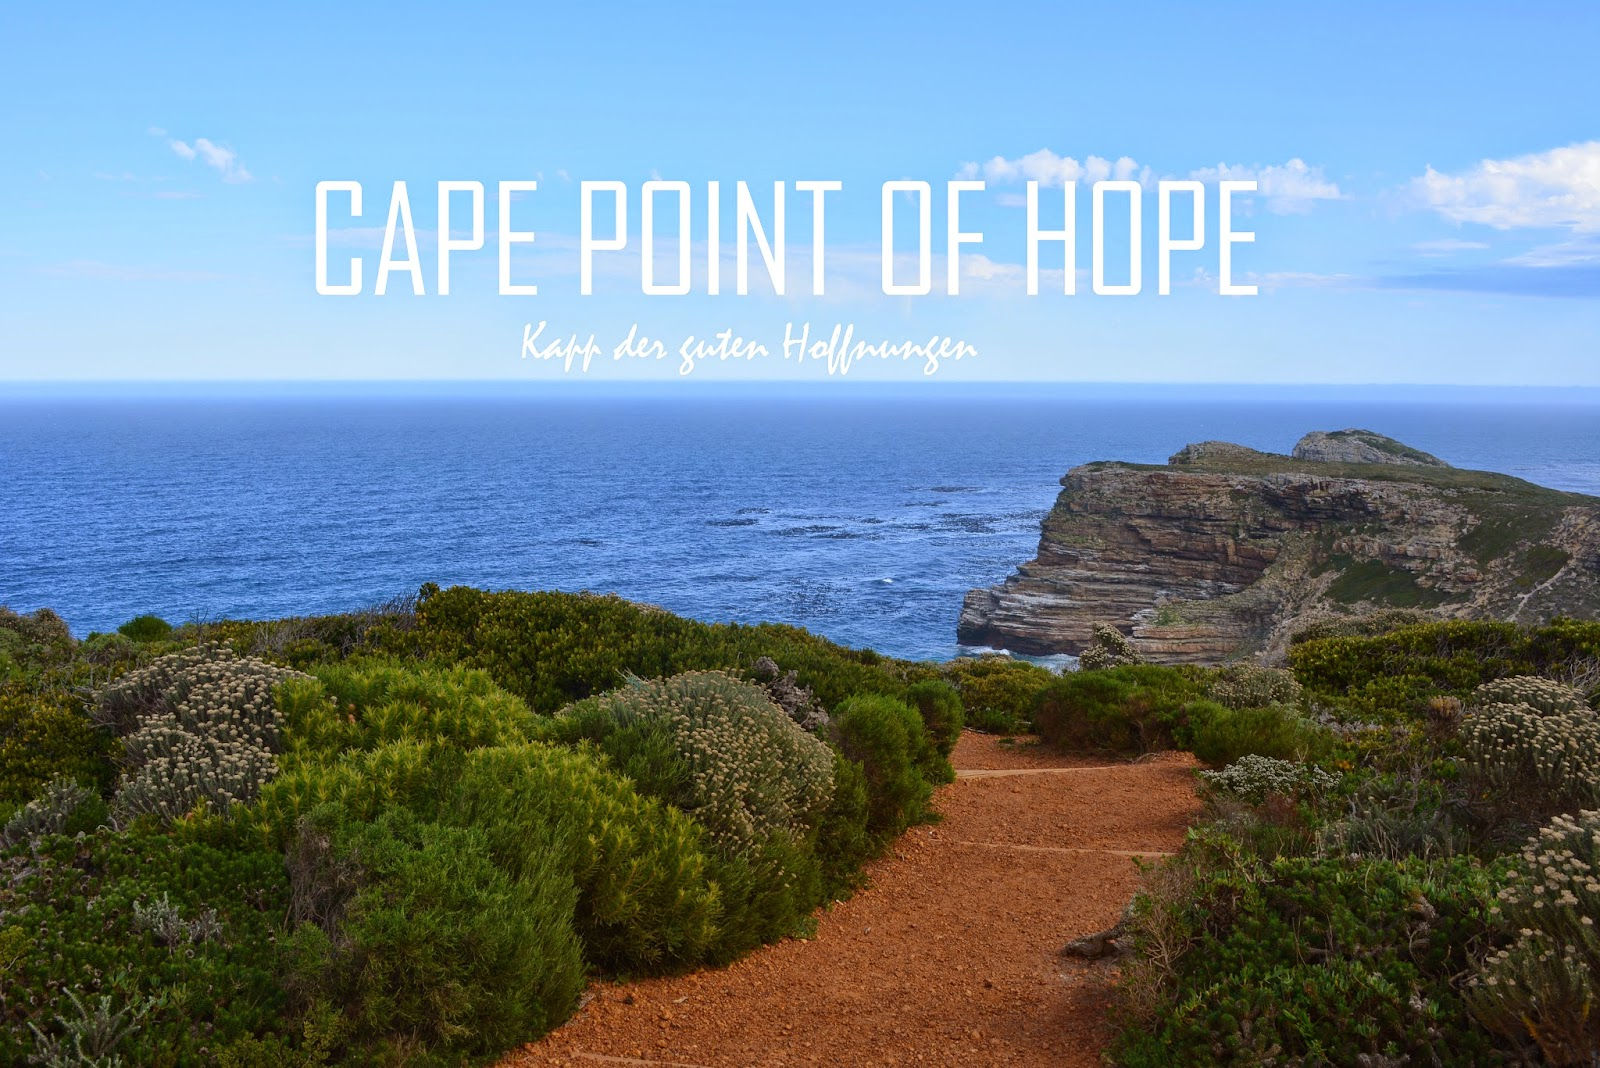 http://pia-malagala.blogspot.de/2014/10/die-einsame-bucht-am-cape-point-of-hope.html